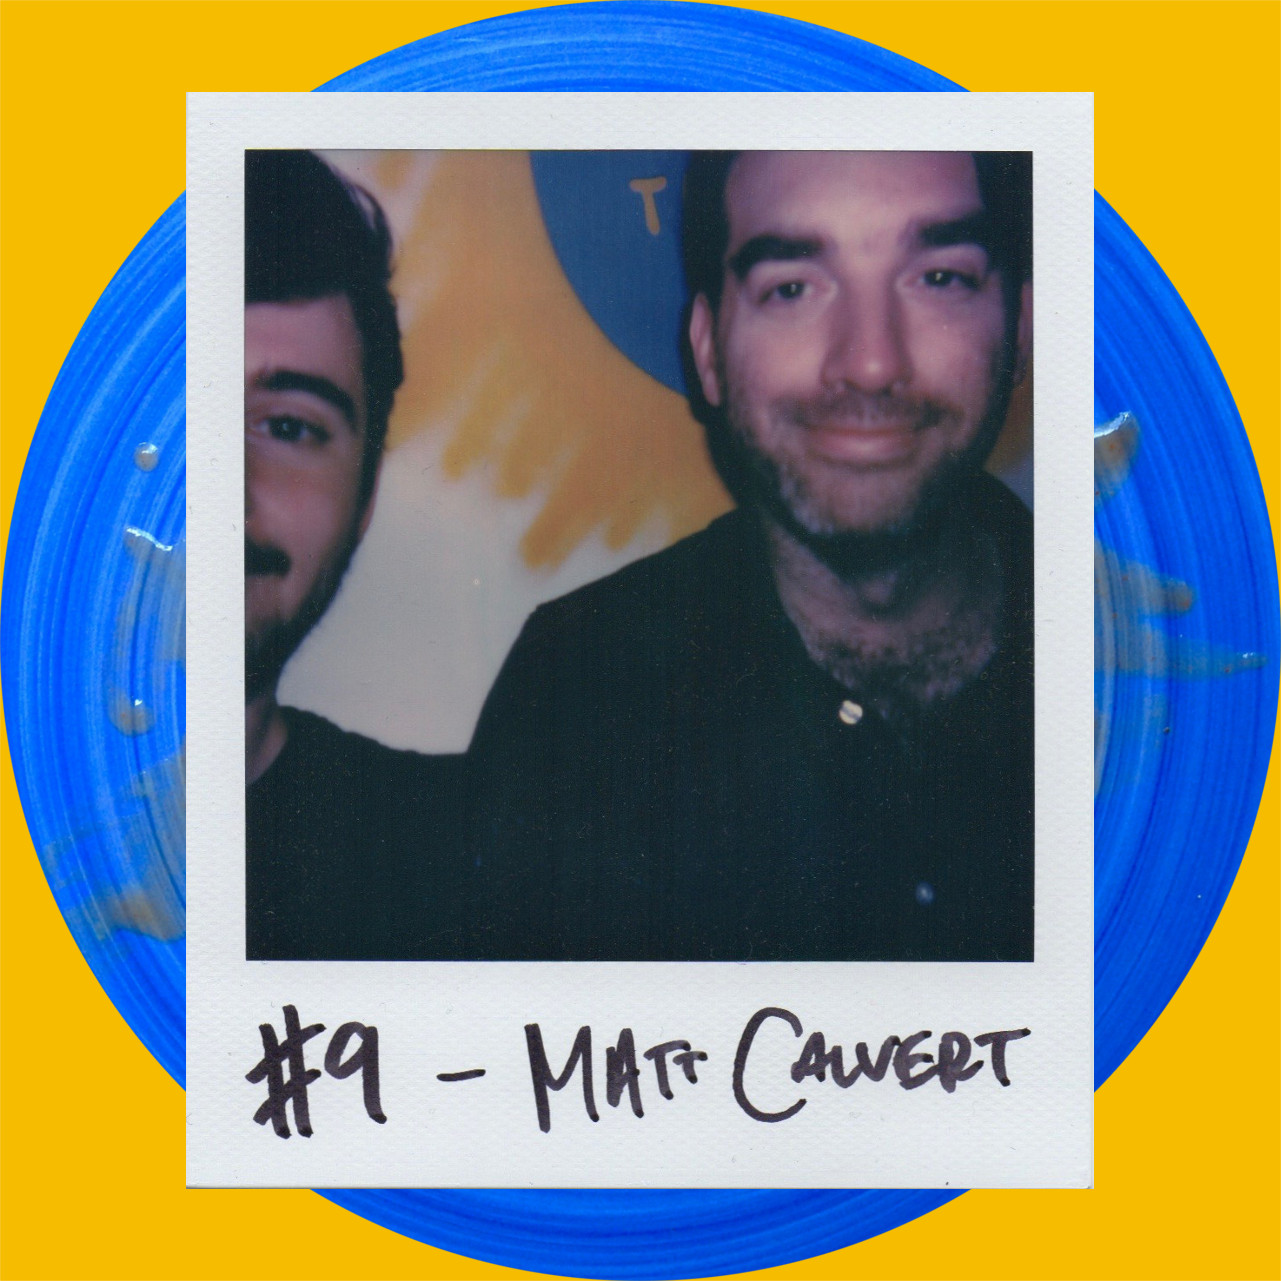 #9B Matt Calvert [MUSIC MAKING]